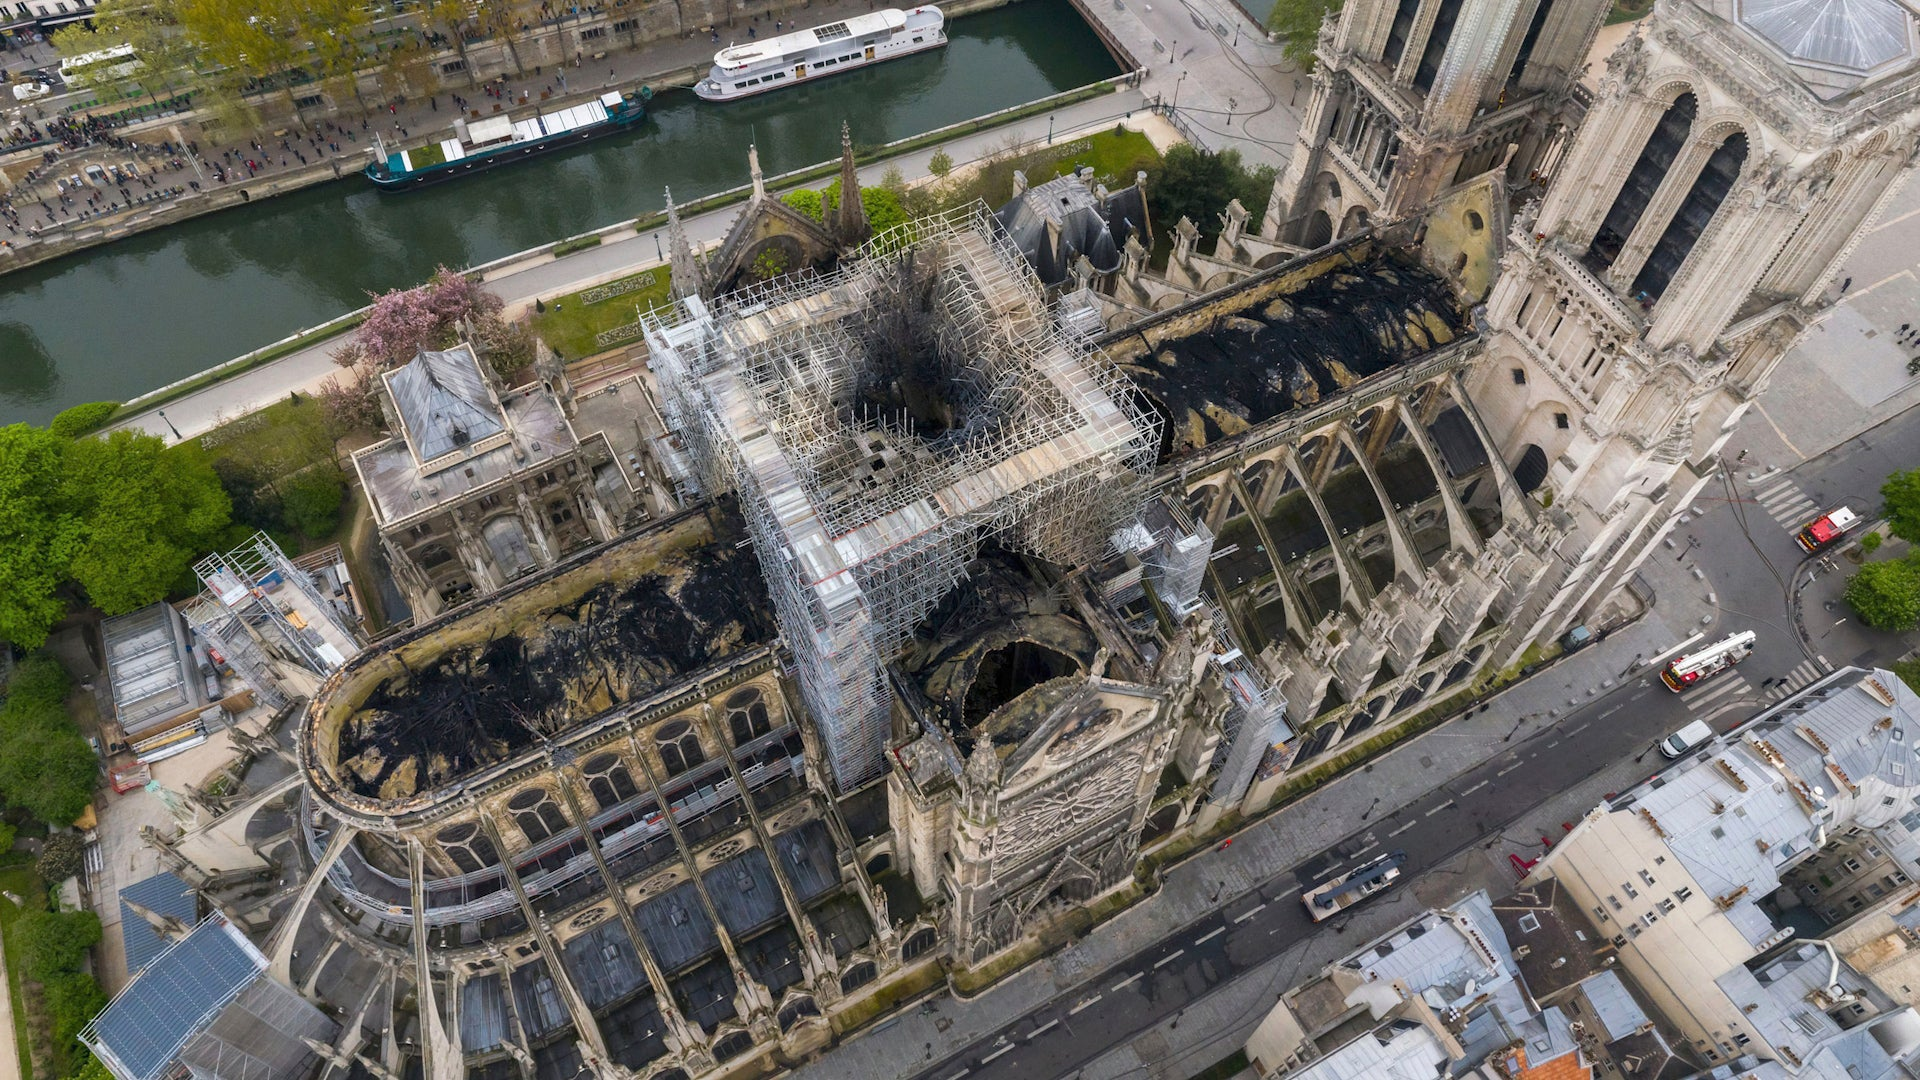 Strong Winds Could Topple Notre Dame, Report Says